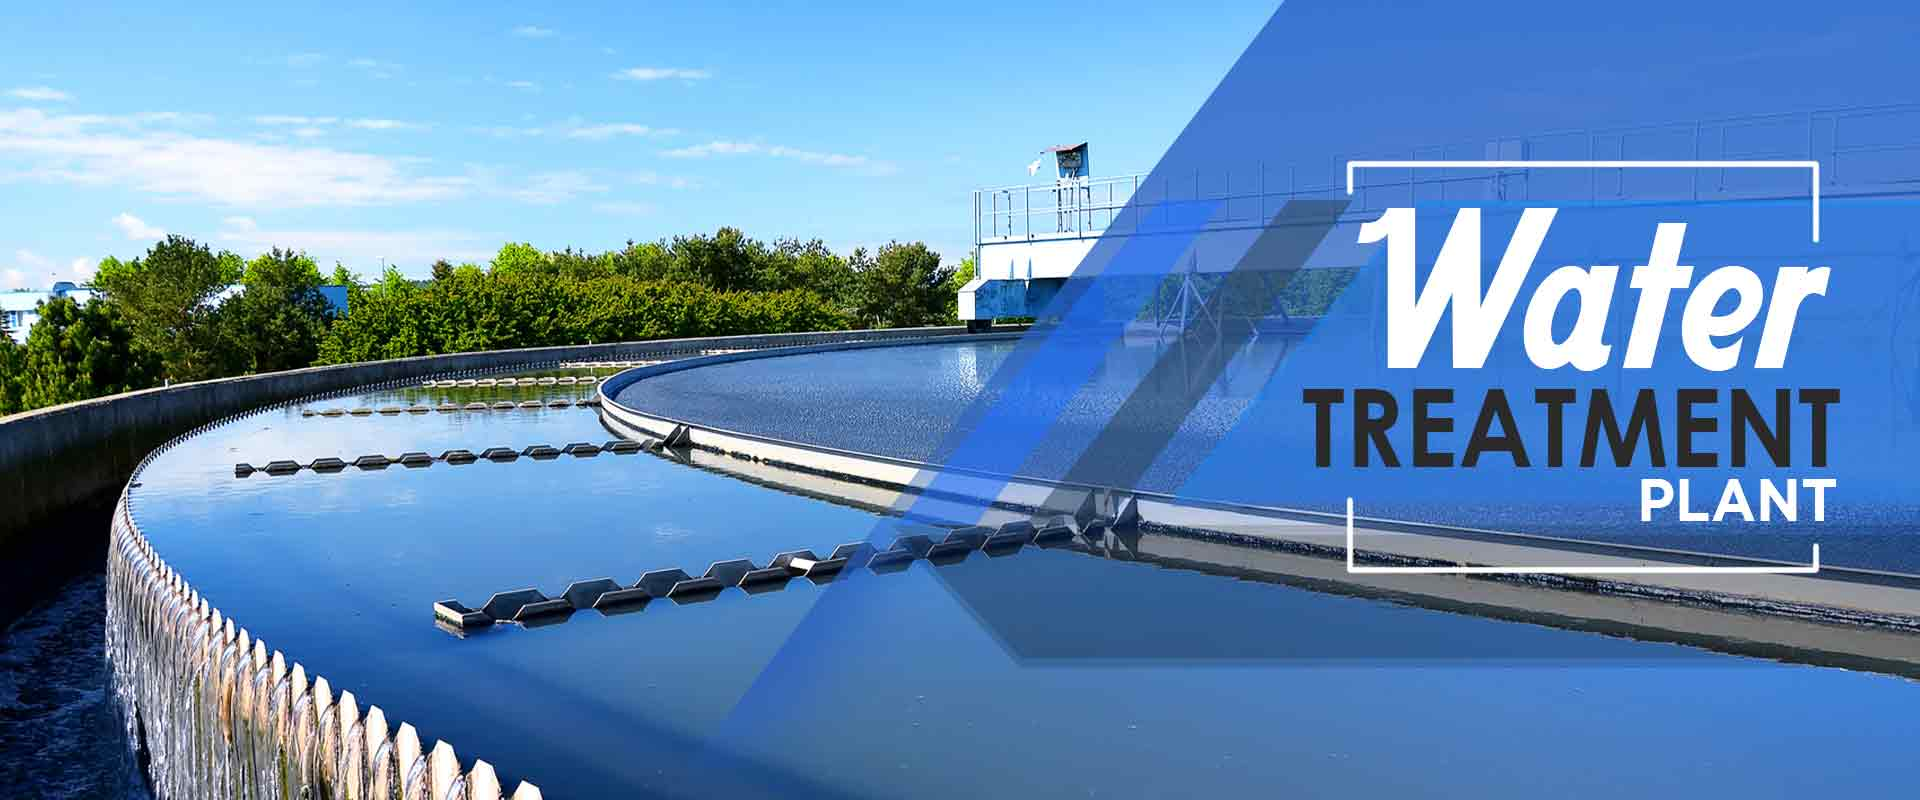 Water Treatment Plant Manufacturers In California